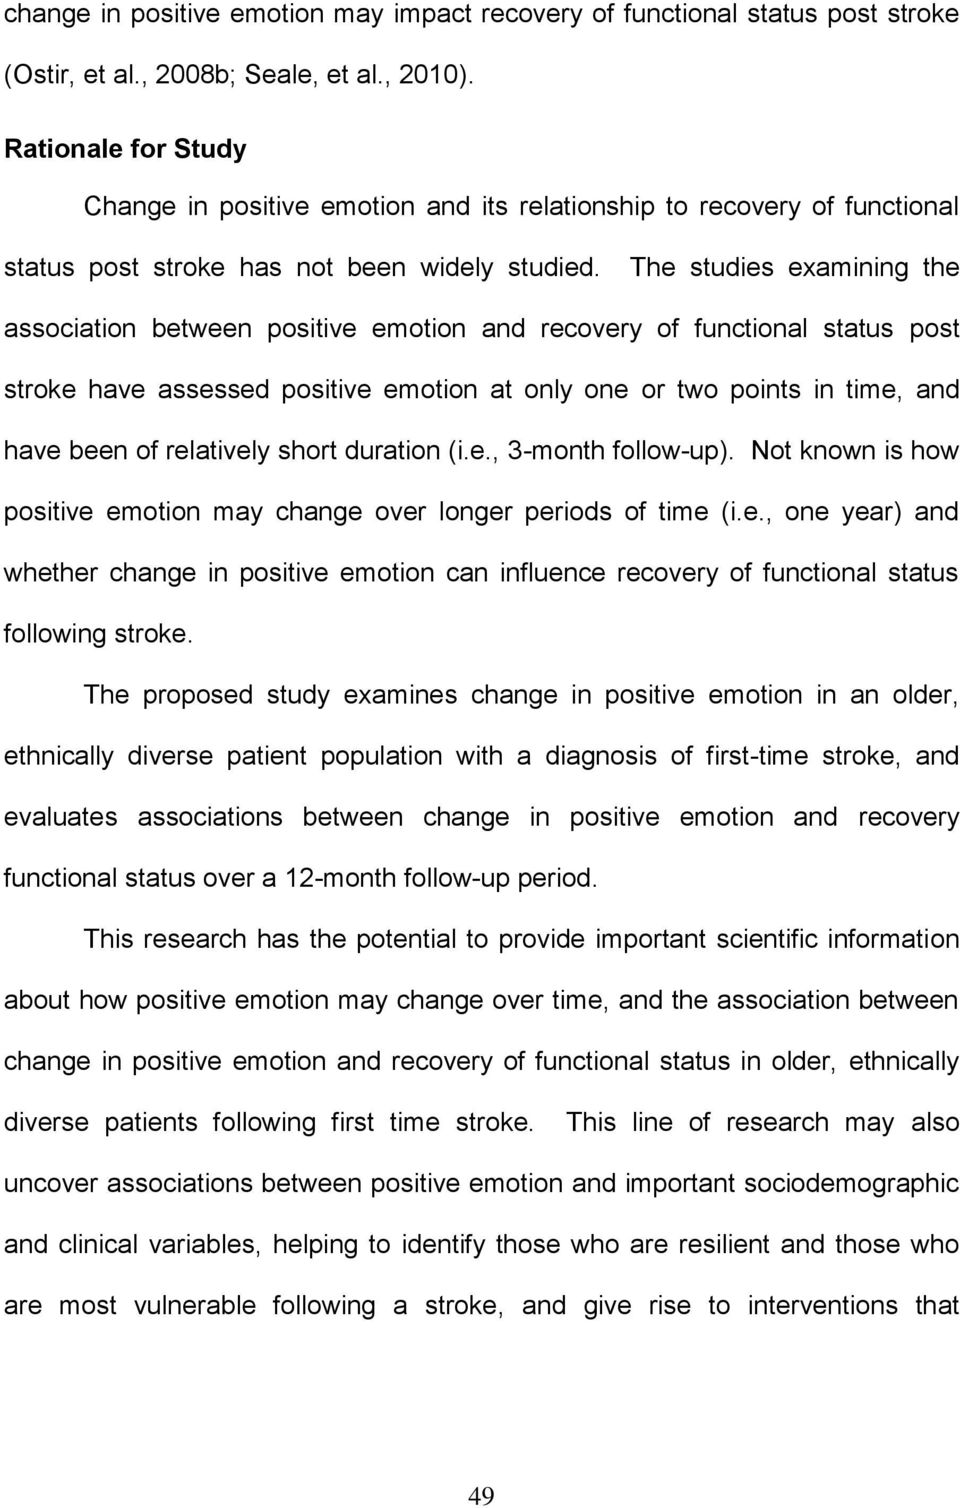 The studies examining the association between positive emotion and recovery of functional status post stroke have assessed positive emotion at only one or two points in time, and have been of